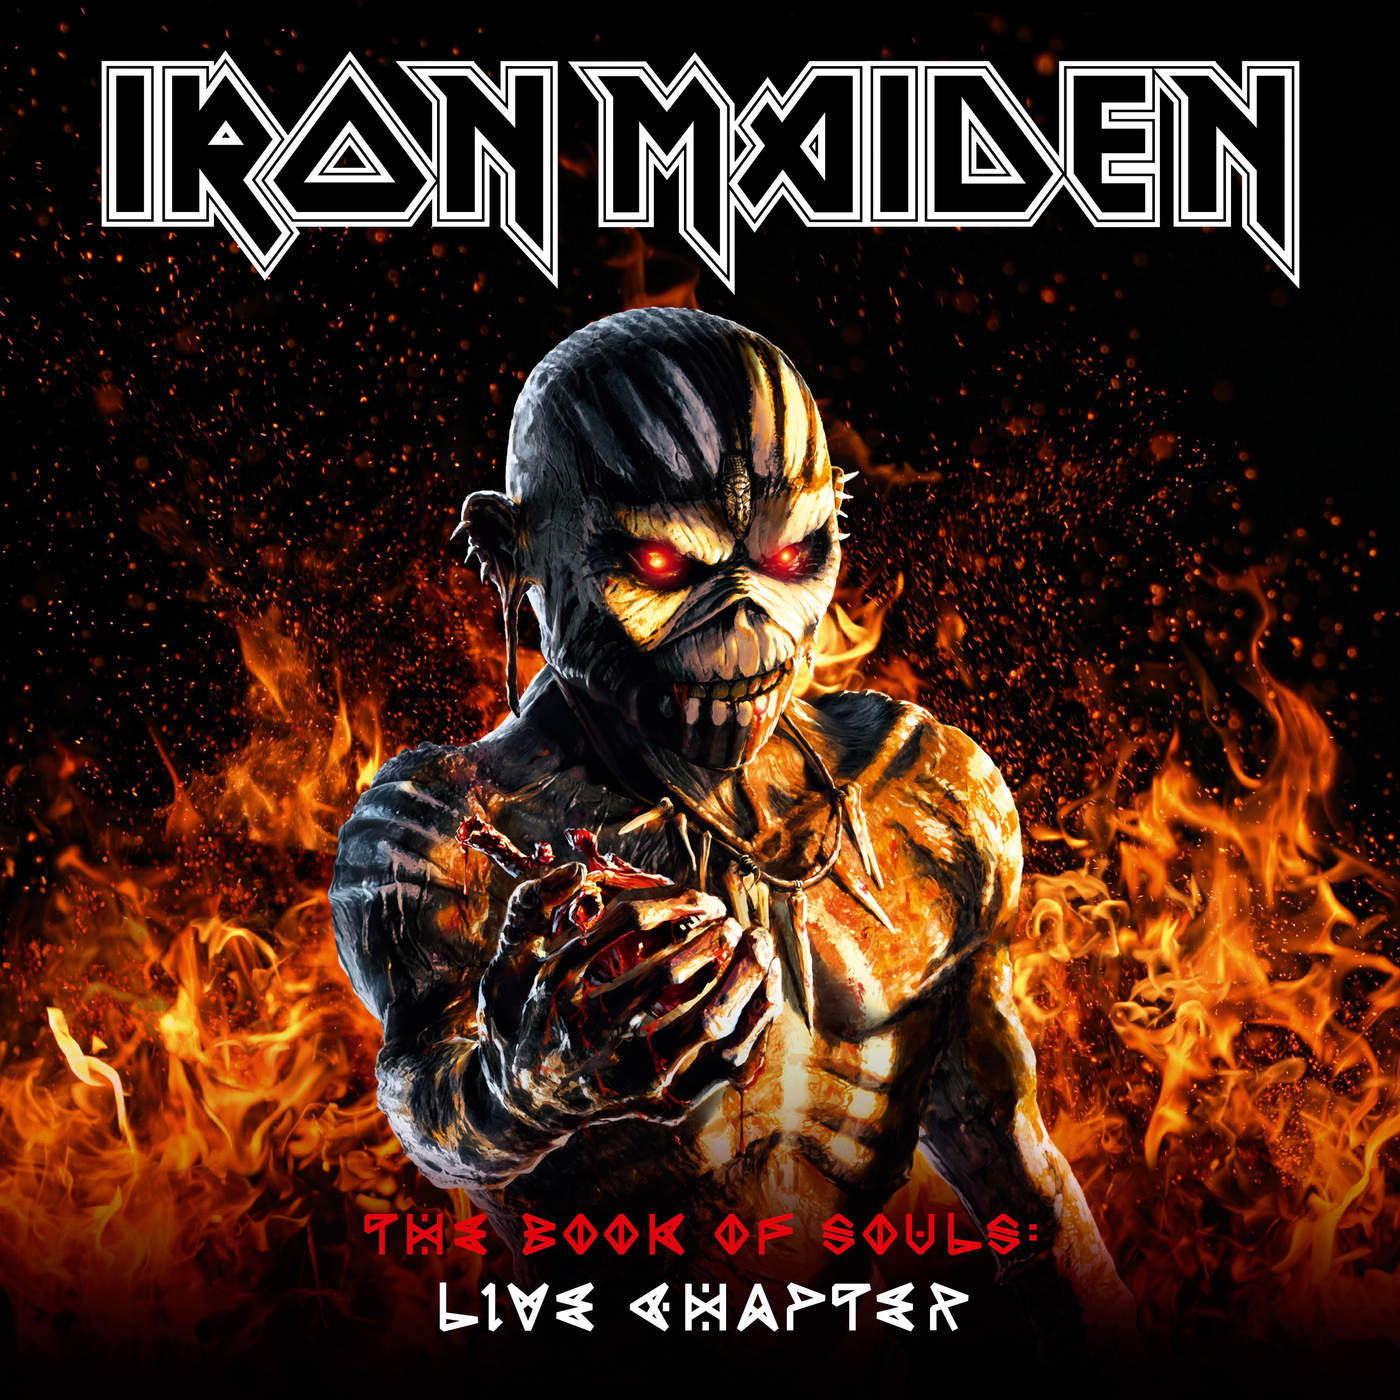 Iron Maiden - The Book of Souls: Live Chapter